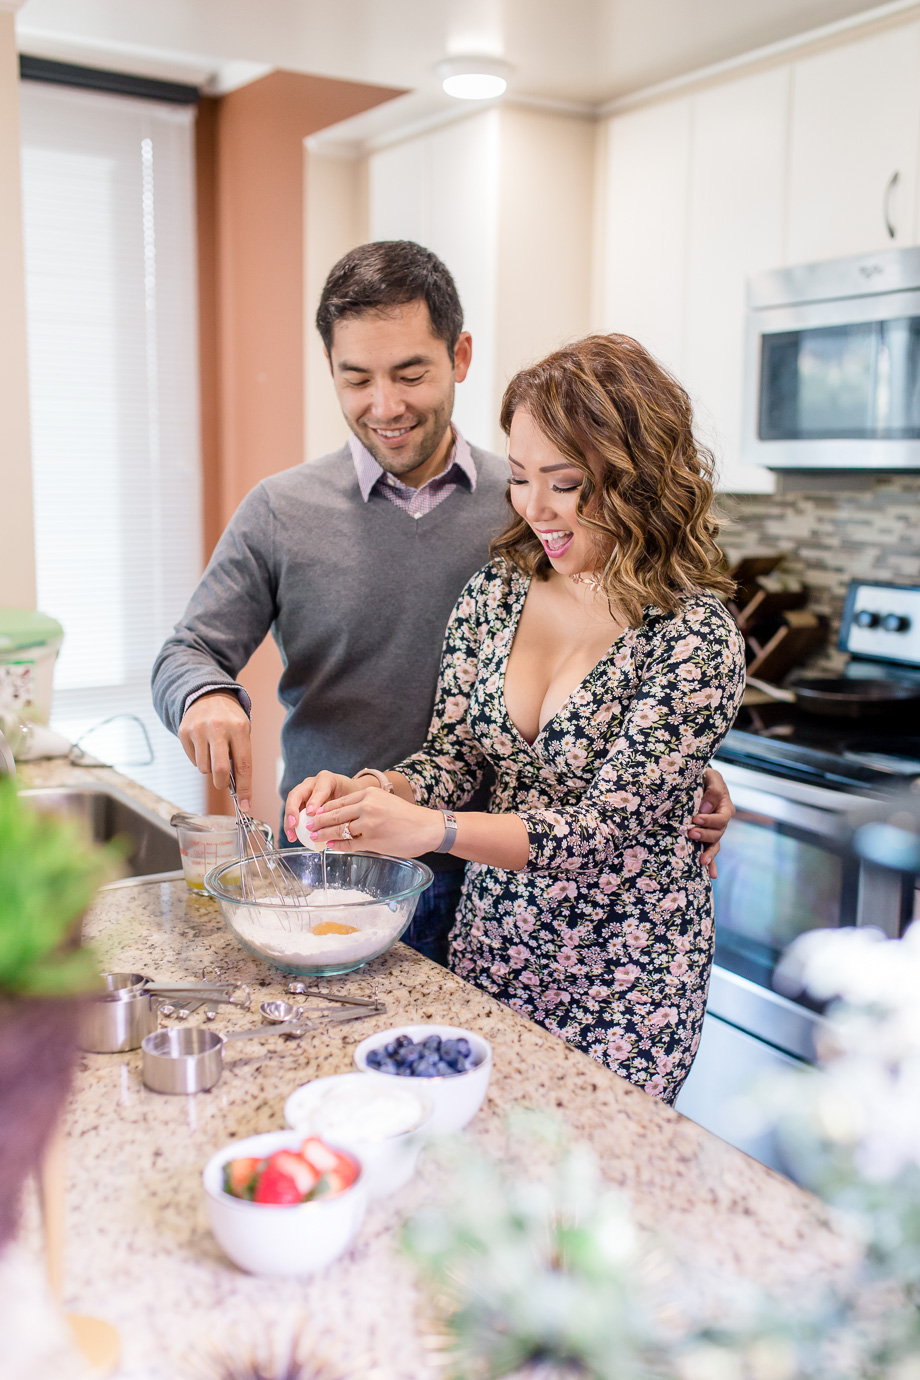 cooking together in their San Francisco downtown apartment for engagement photos is super fun and intimate